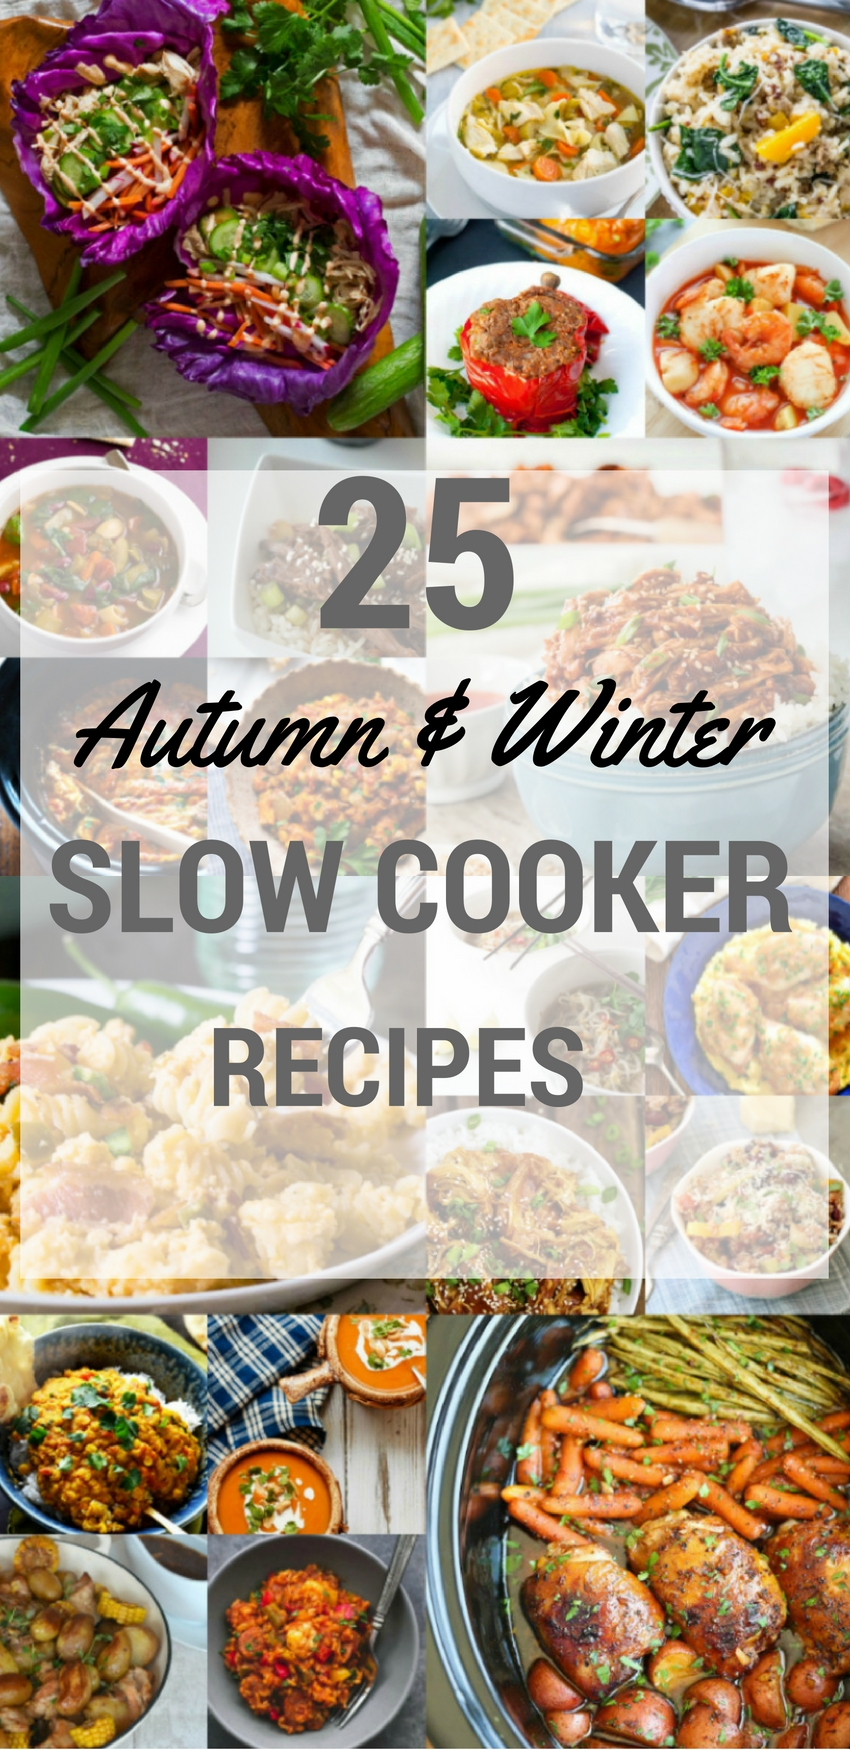 25 slow cooker recipes for autumn and winter: Quick and simple to prepare crock pot meals for all the family. For images and recipes, check out my blog post...